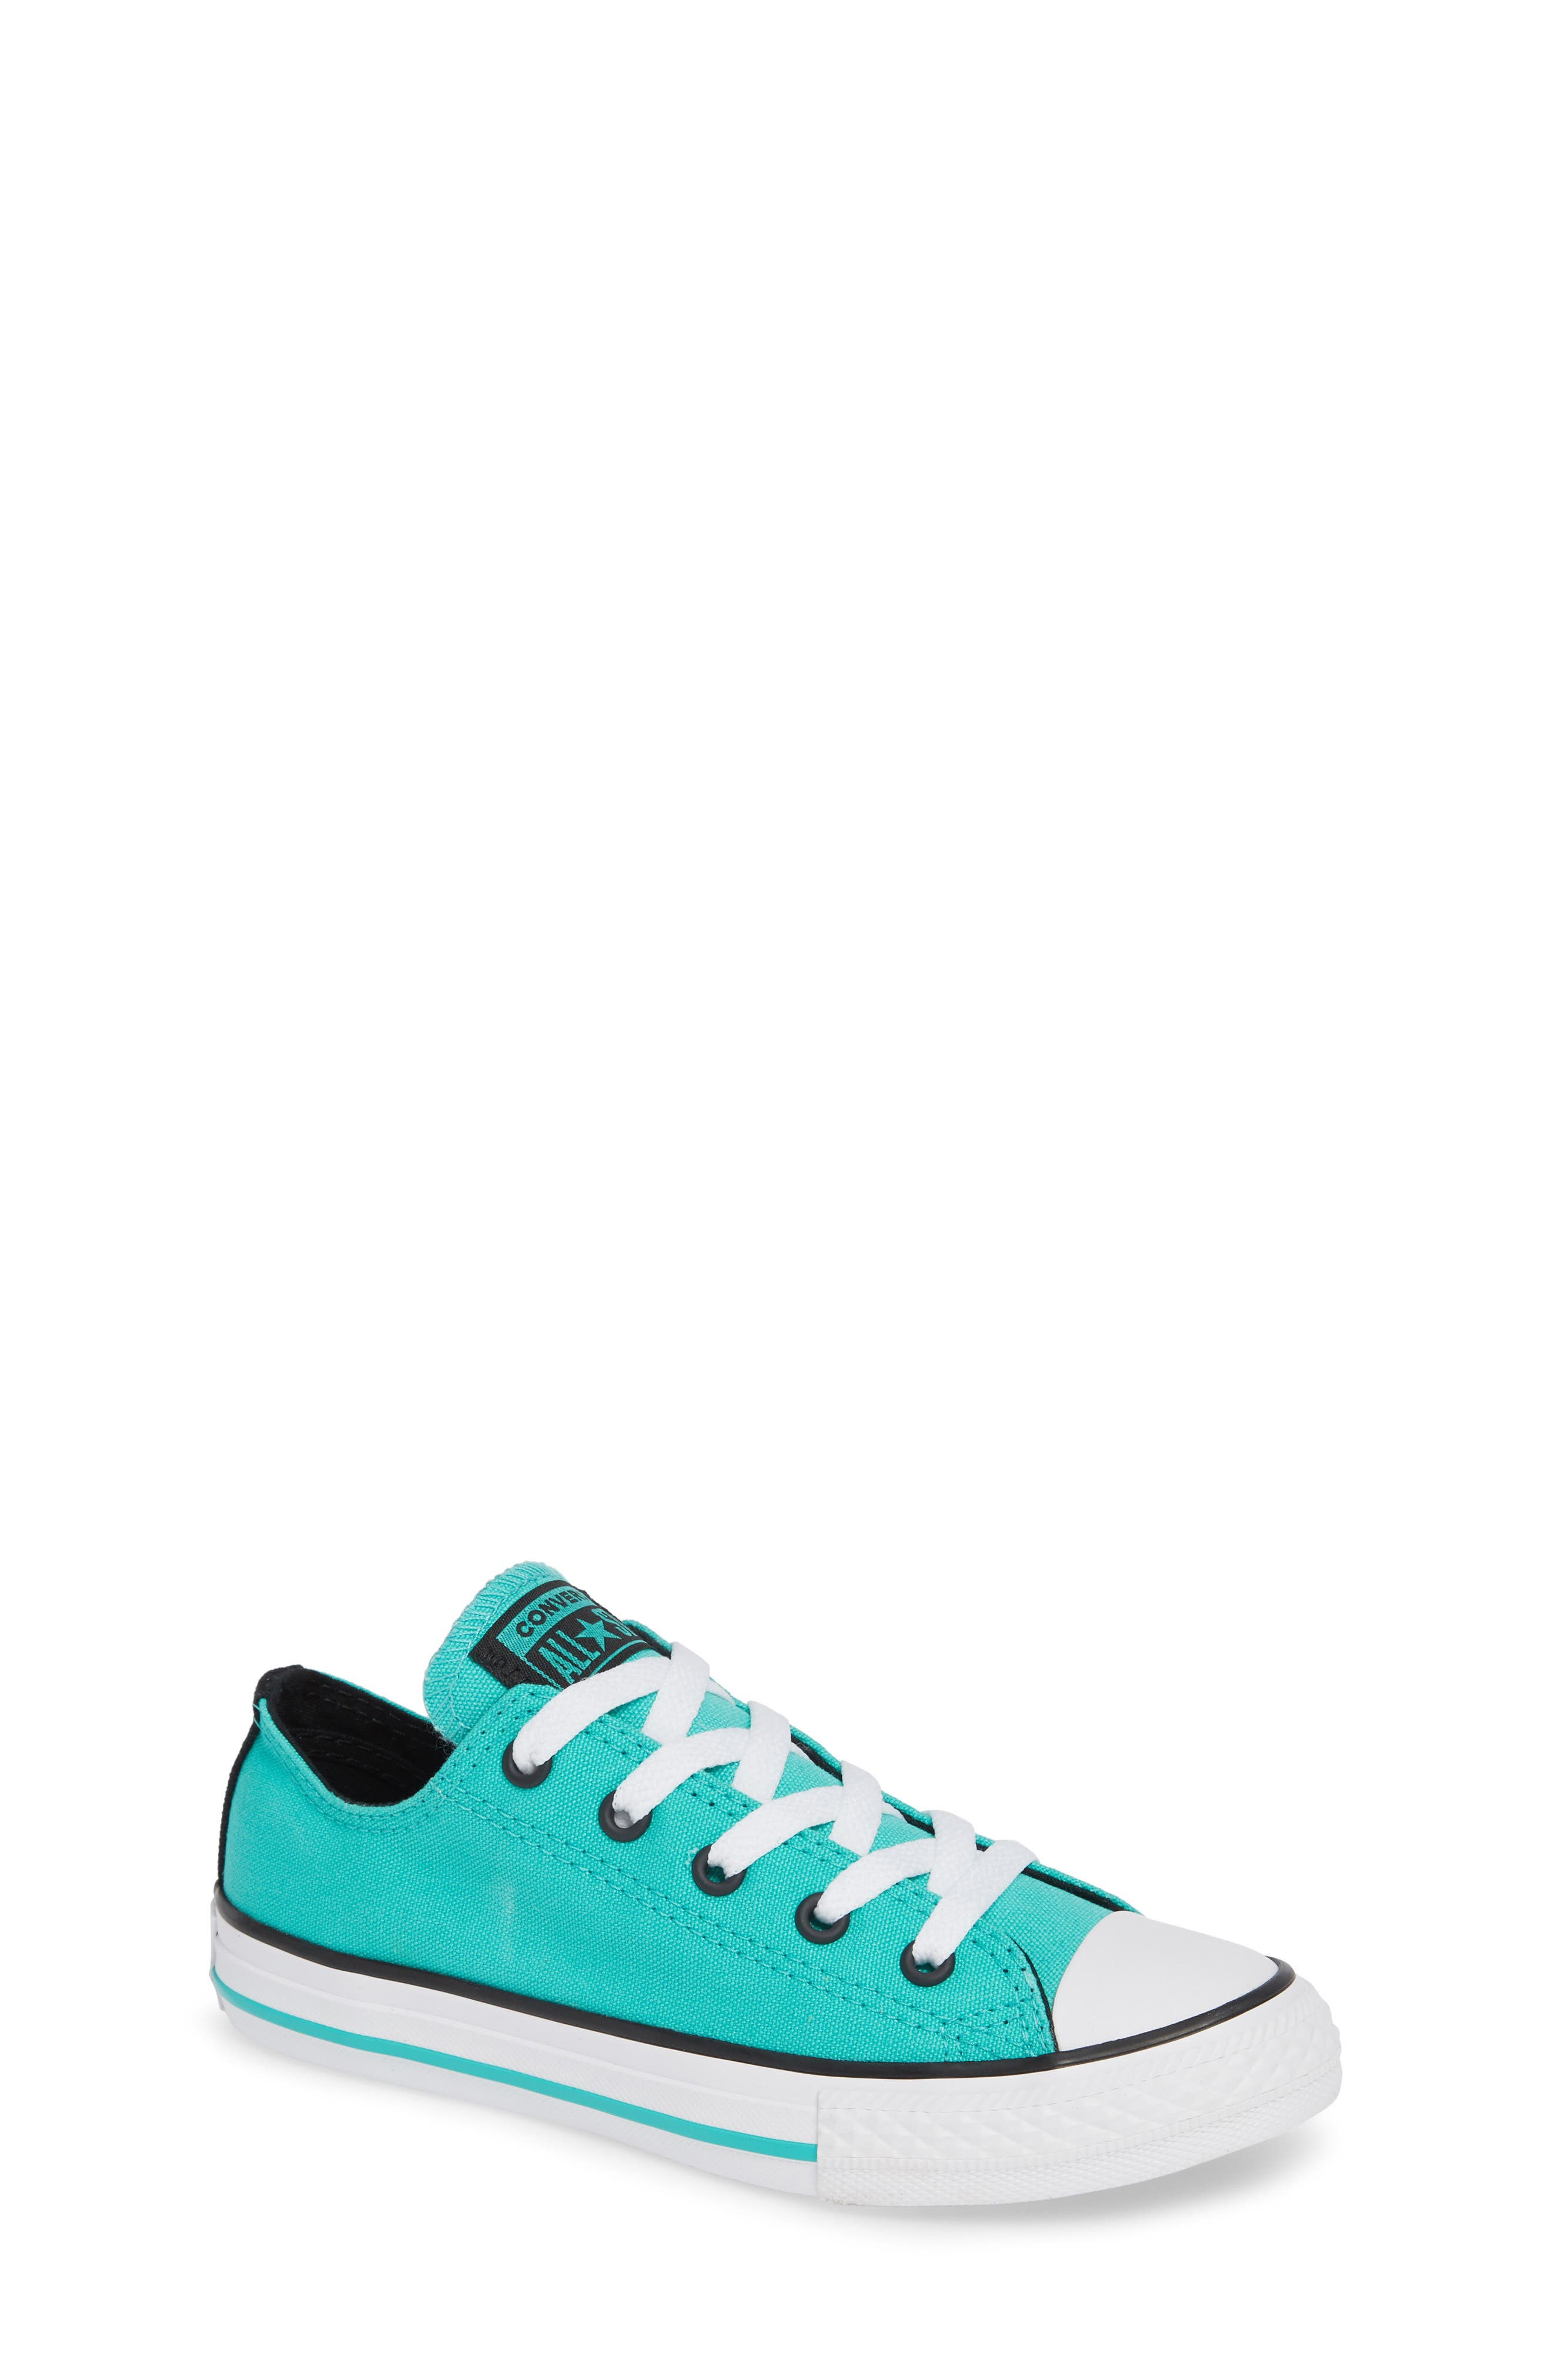 Chuck Taylor<sup>®</sup> Sneaker,                             Main thumbnail 1, color,                             PURE TEAL